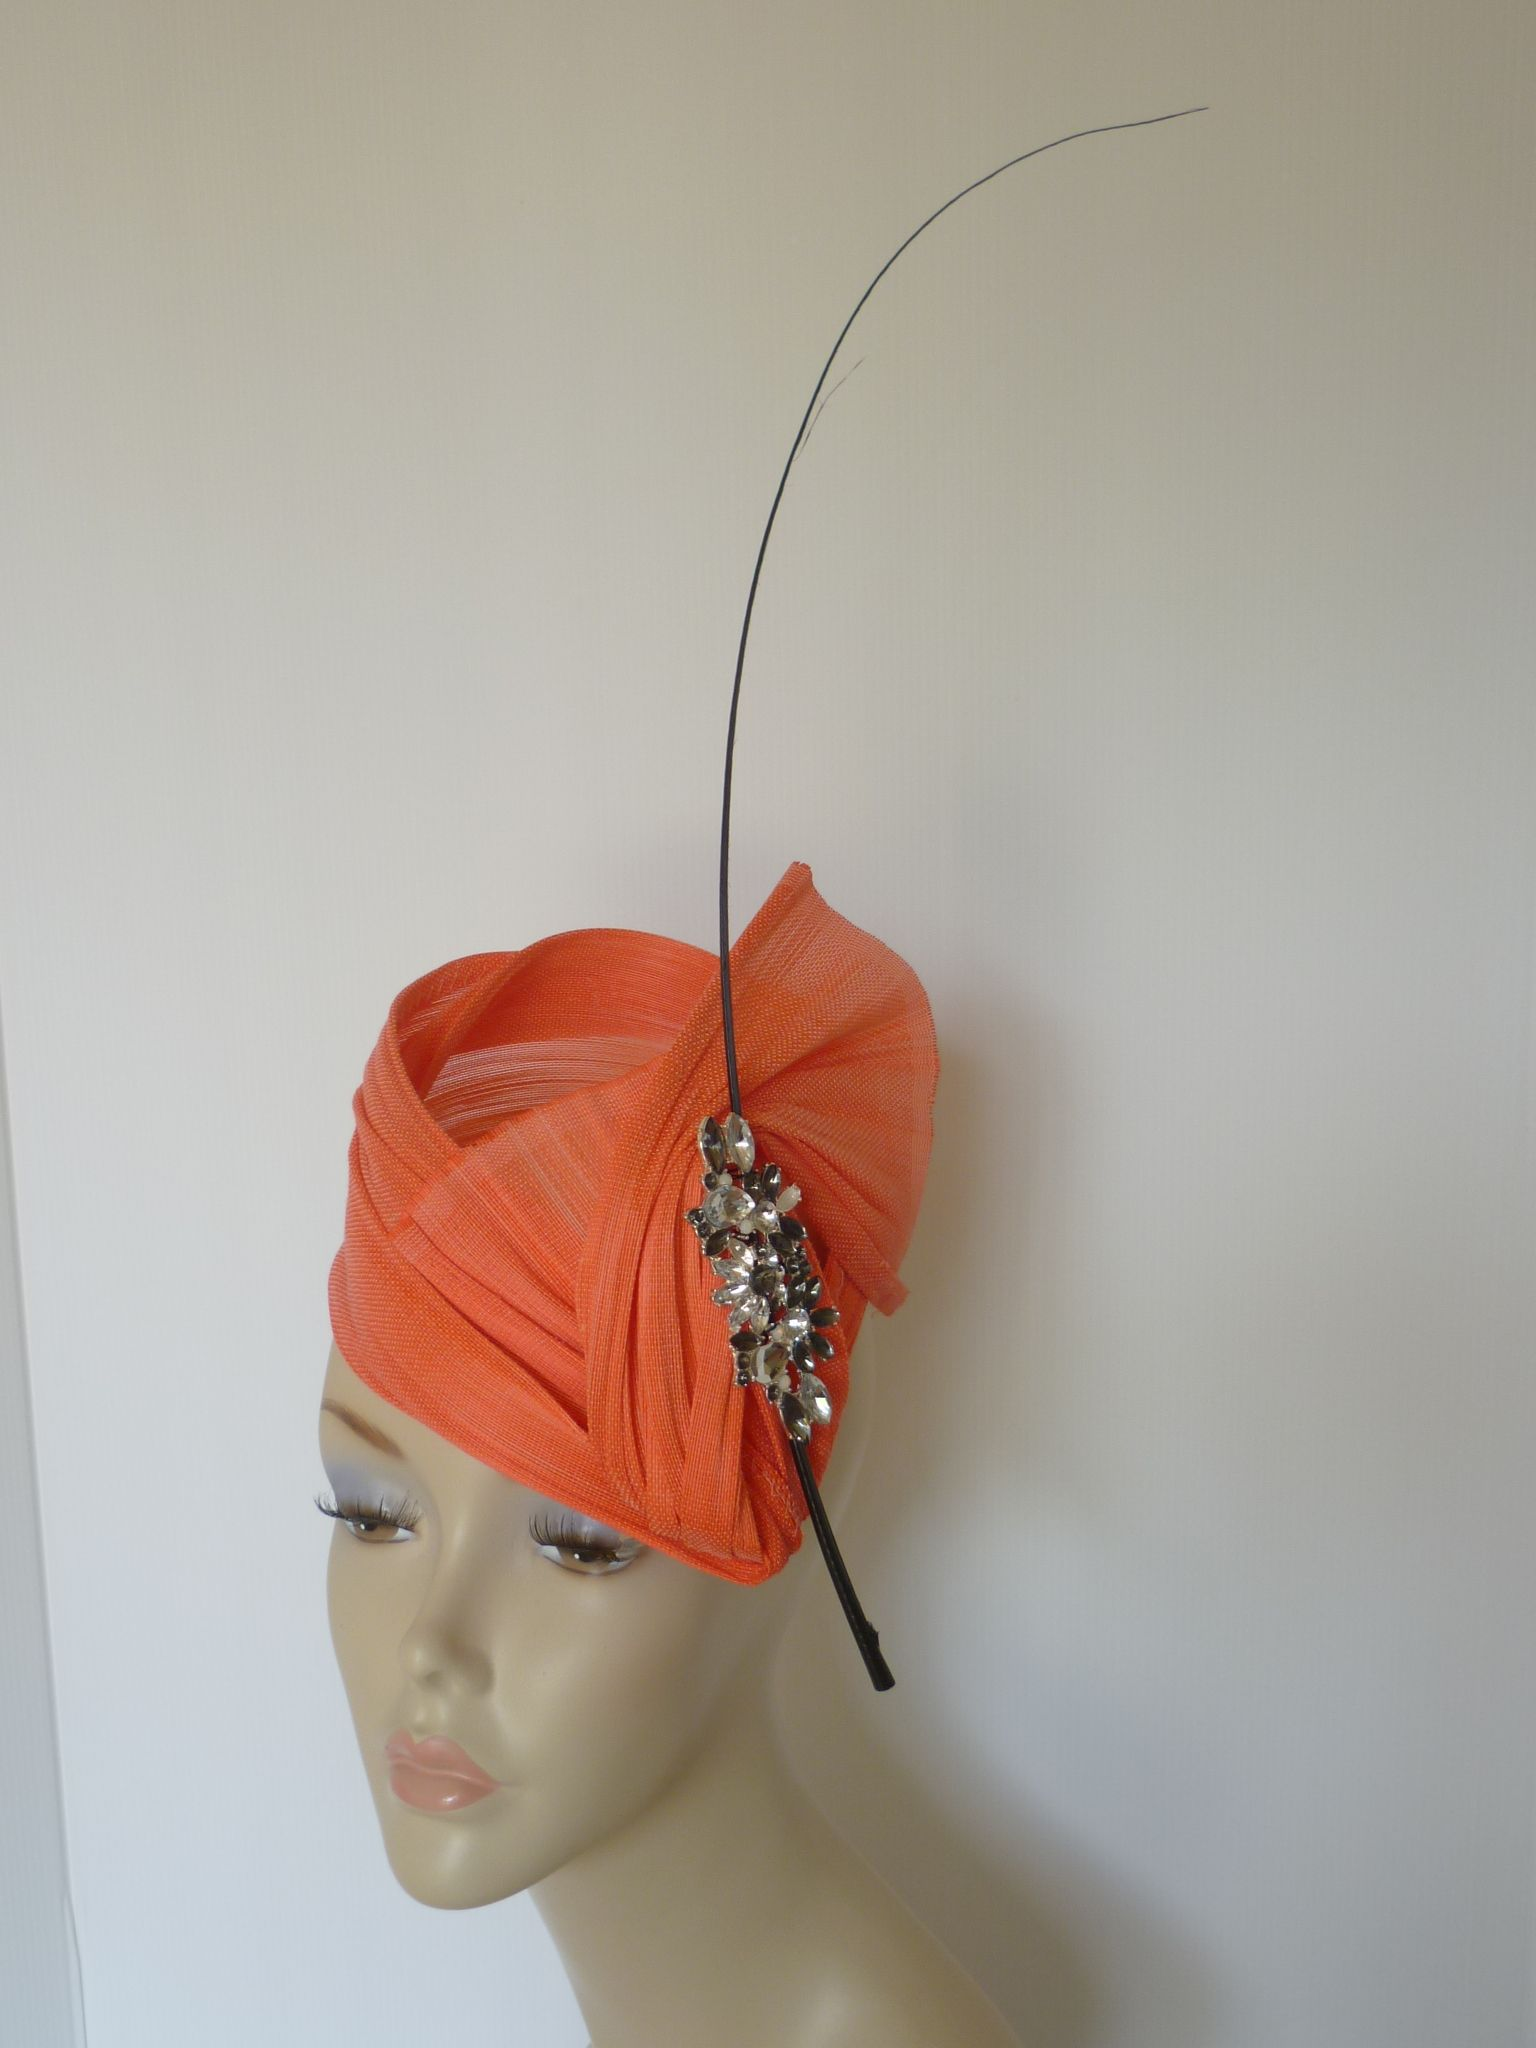 Monika Neuhauser Millinery. To see the source оf this item click on the picture. Please also visit my Etsy shop LarisaBоutique: https://www.etsy.com/shop/LarisaBoutique Thanks!